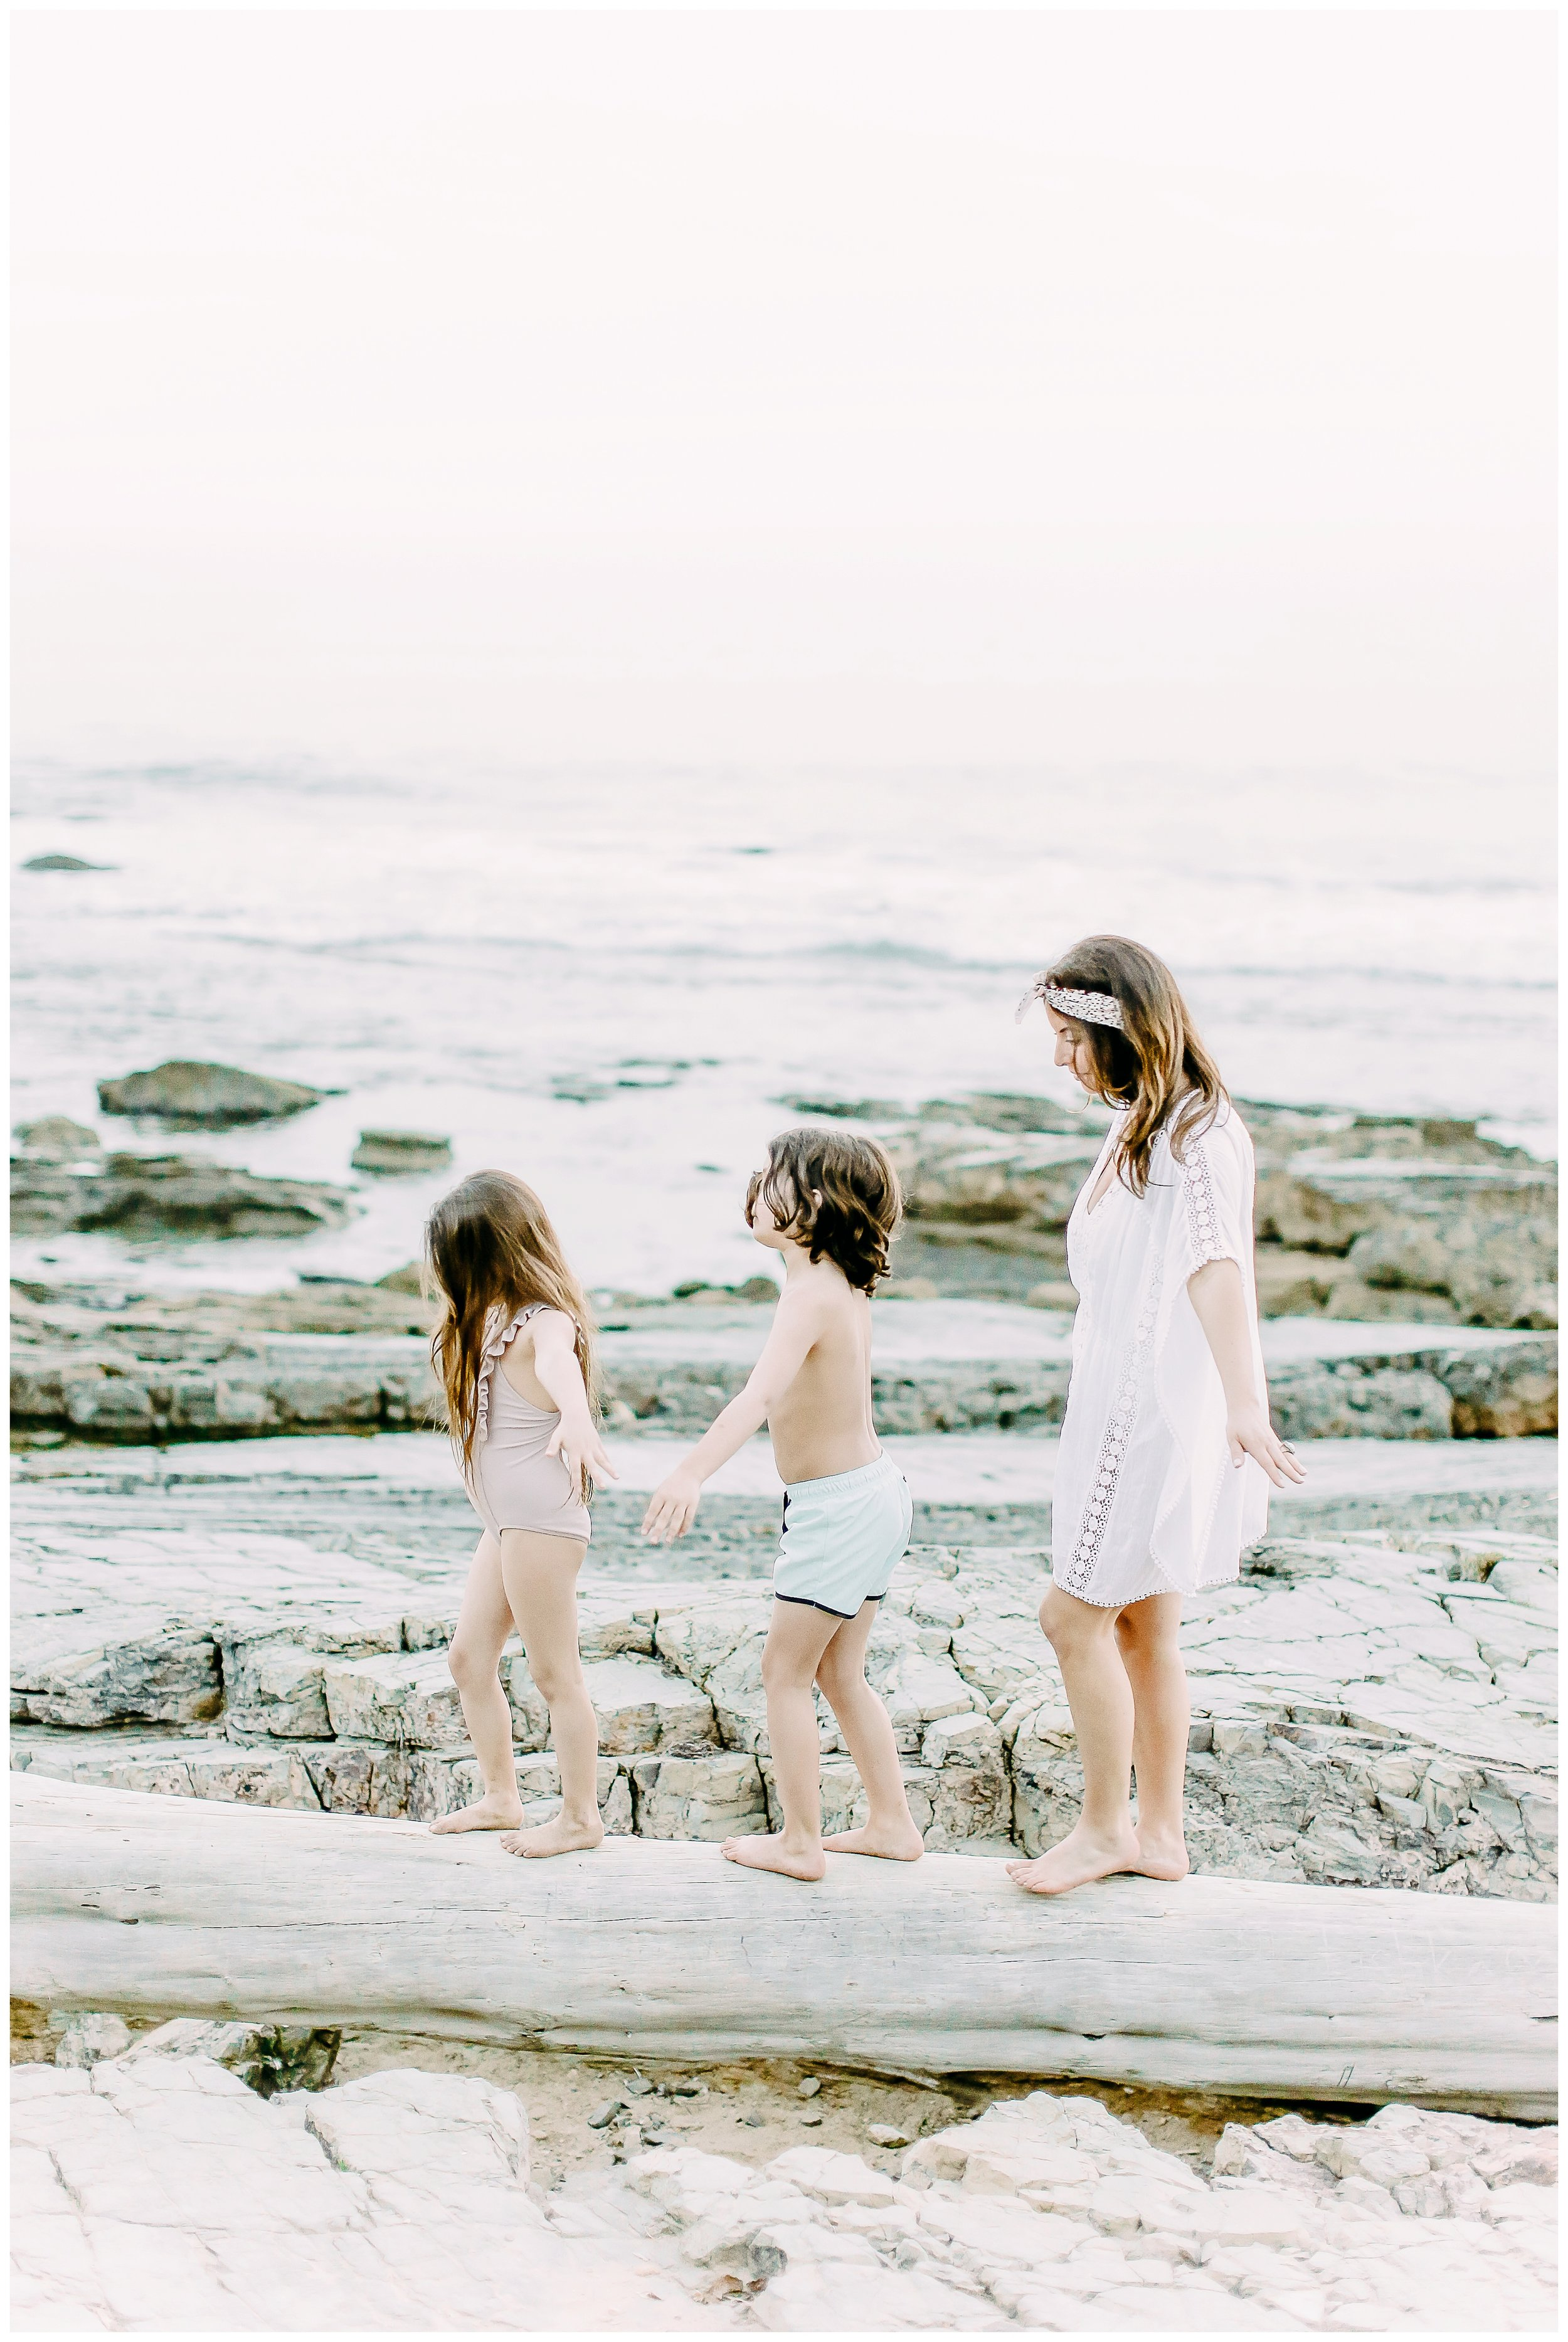 Crystal-Cove-State-Beach-Motherhood- Session-Crystal-Cove-Newport-Beach-Family-Photographer-Crystal-Cove-Minnow-Swim-Cori-Kleckner-Photography-Orange-County-Vacation-Family-Photos-Session-_0859.jpg